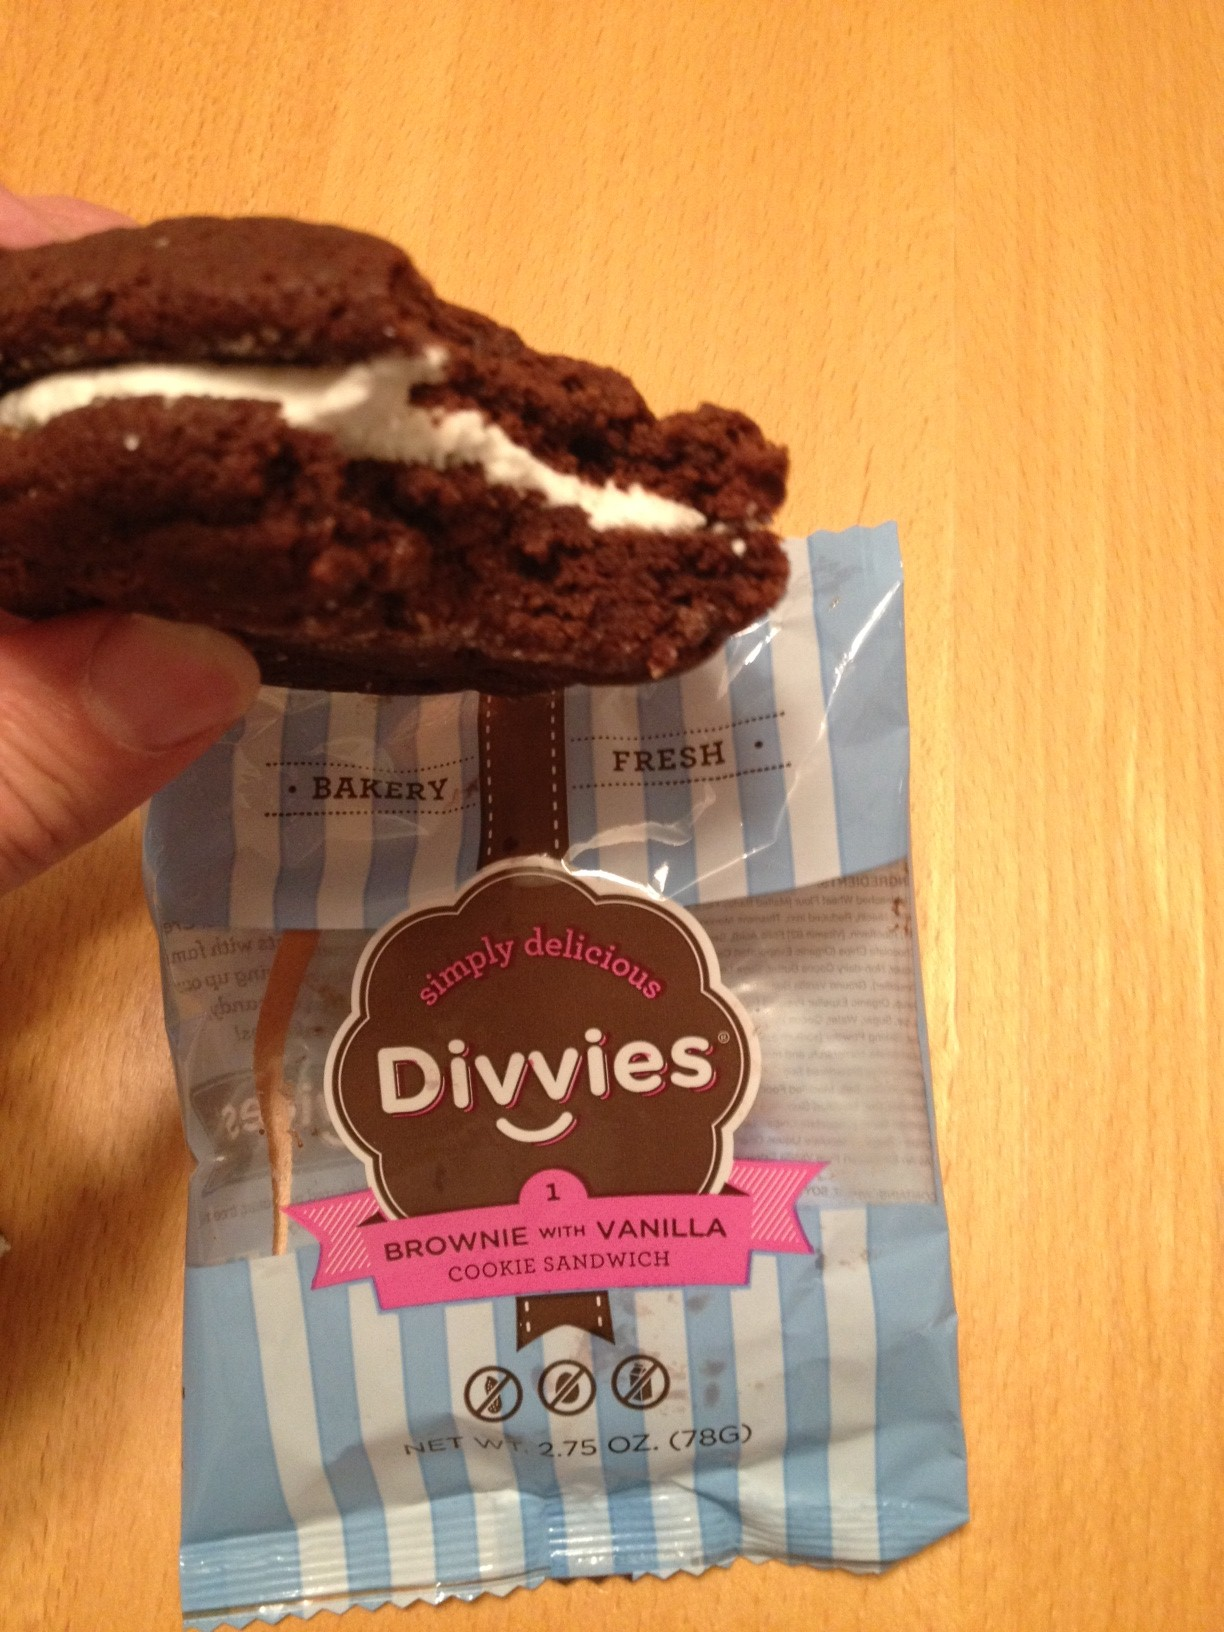 Divvies Brownie Cookie Sandwich with Vanilla Cream